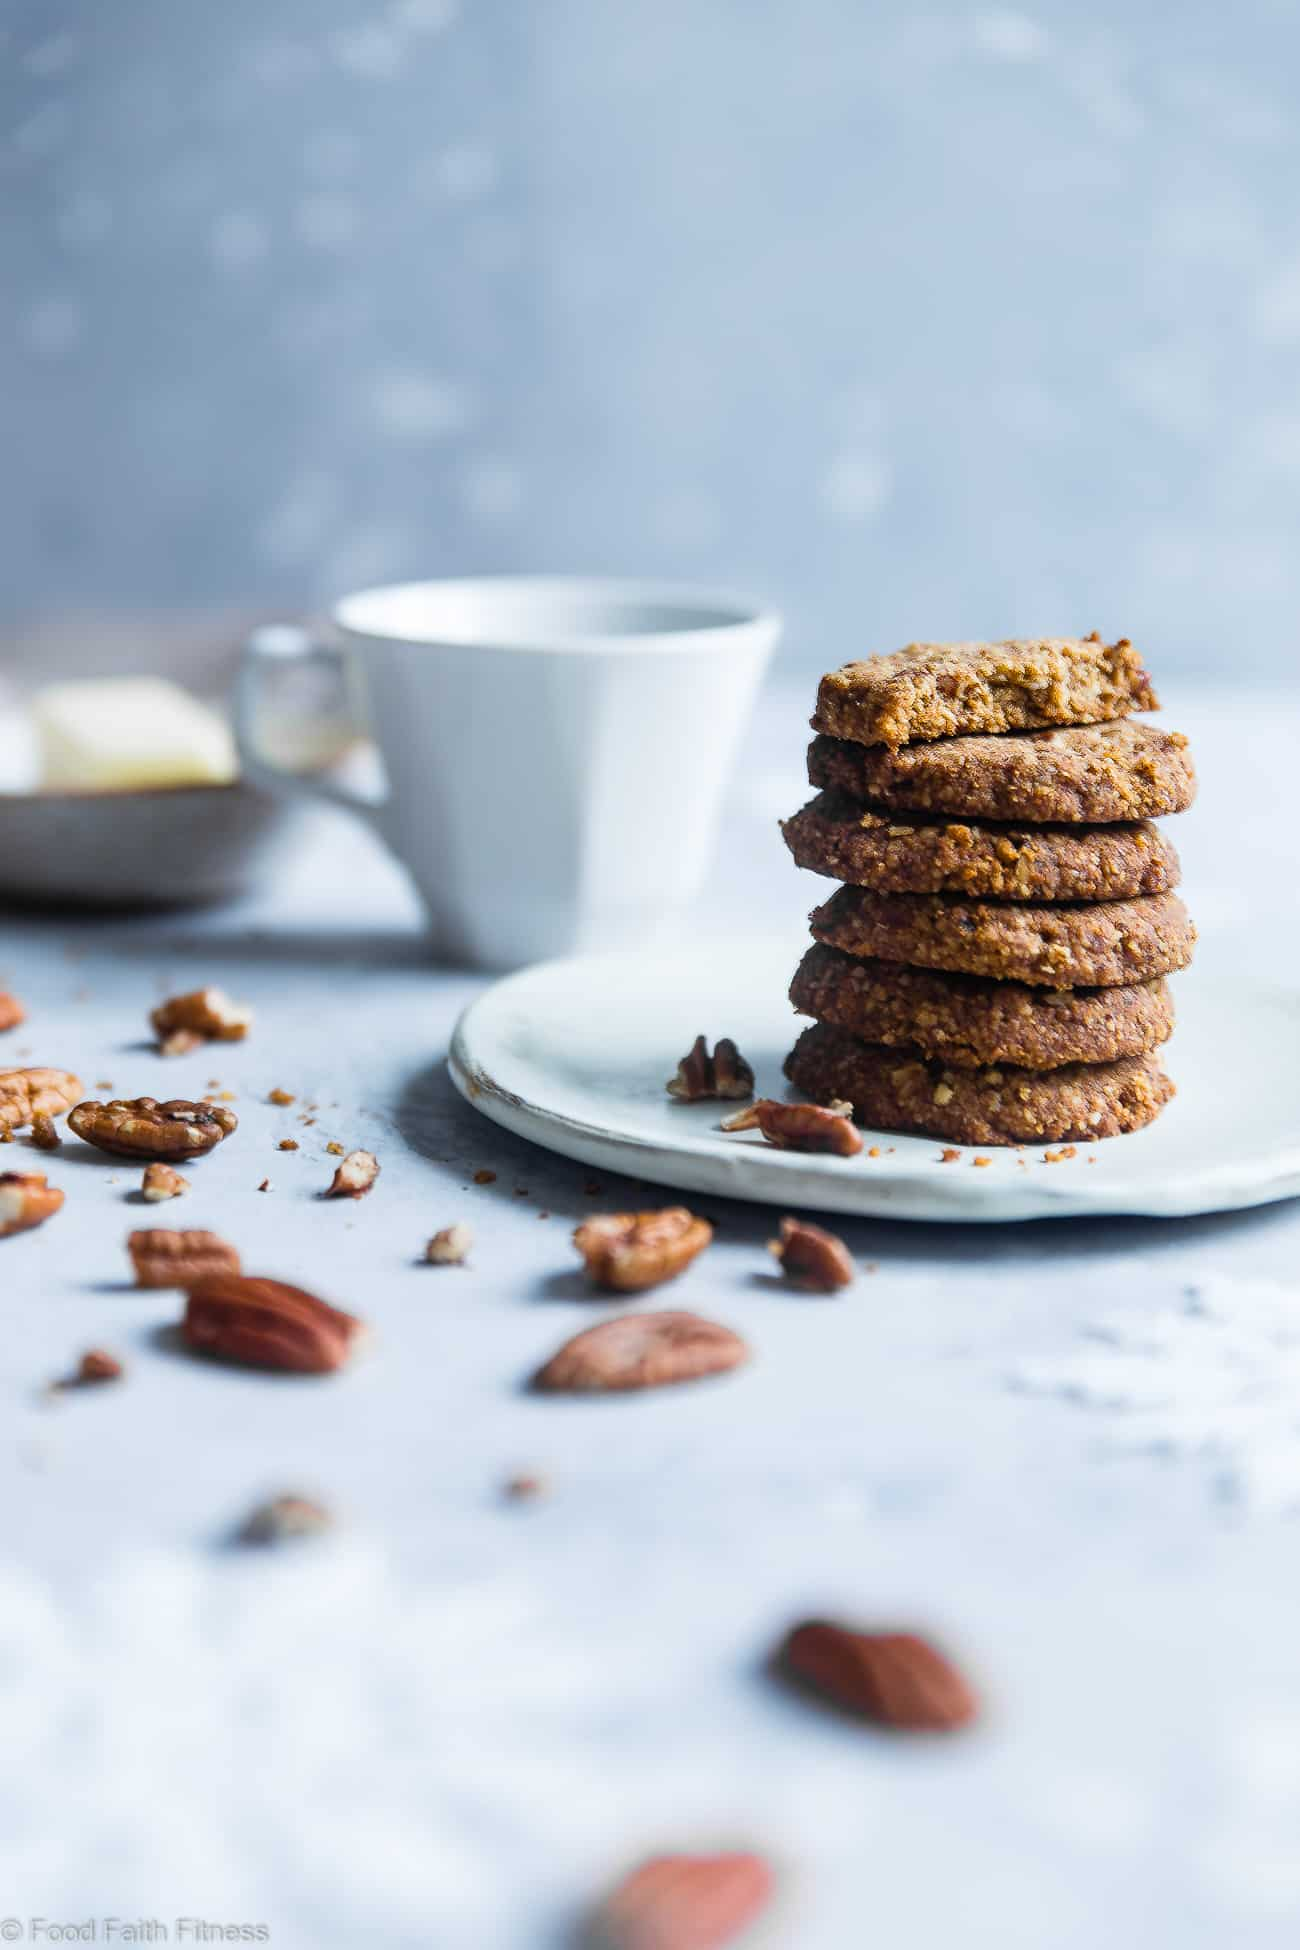 Brown Sugar Chewy Butter Pecan Cookies Recipe - These 6 ingredient, gluten free cookies with pecans are perfectly crisp on the outside and chewy on the inside! A paleo and vegan friendly, dairy-free treat for the holidays! | Foodfaithfitness.com | @FoodFaithFit